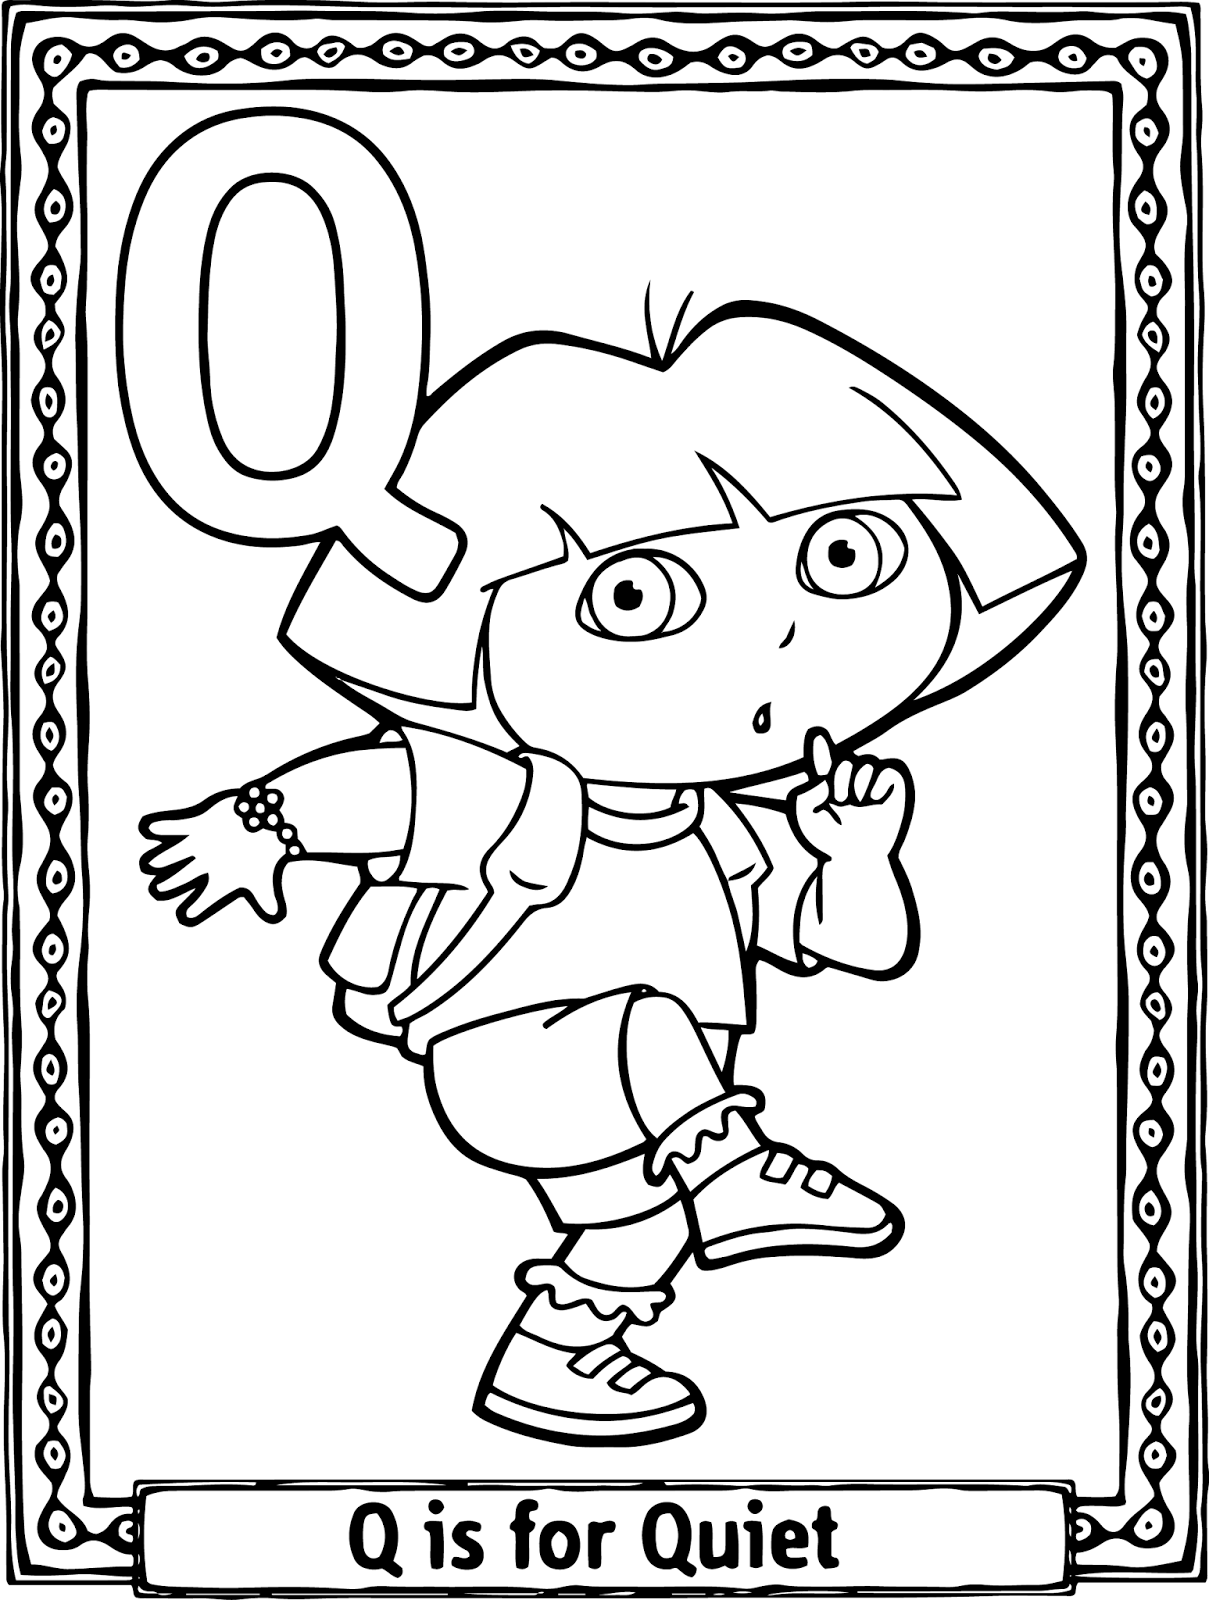 q pootle 5 coloring book pages - photo #43